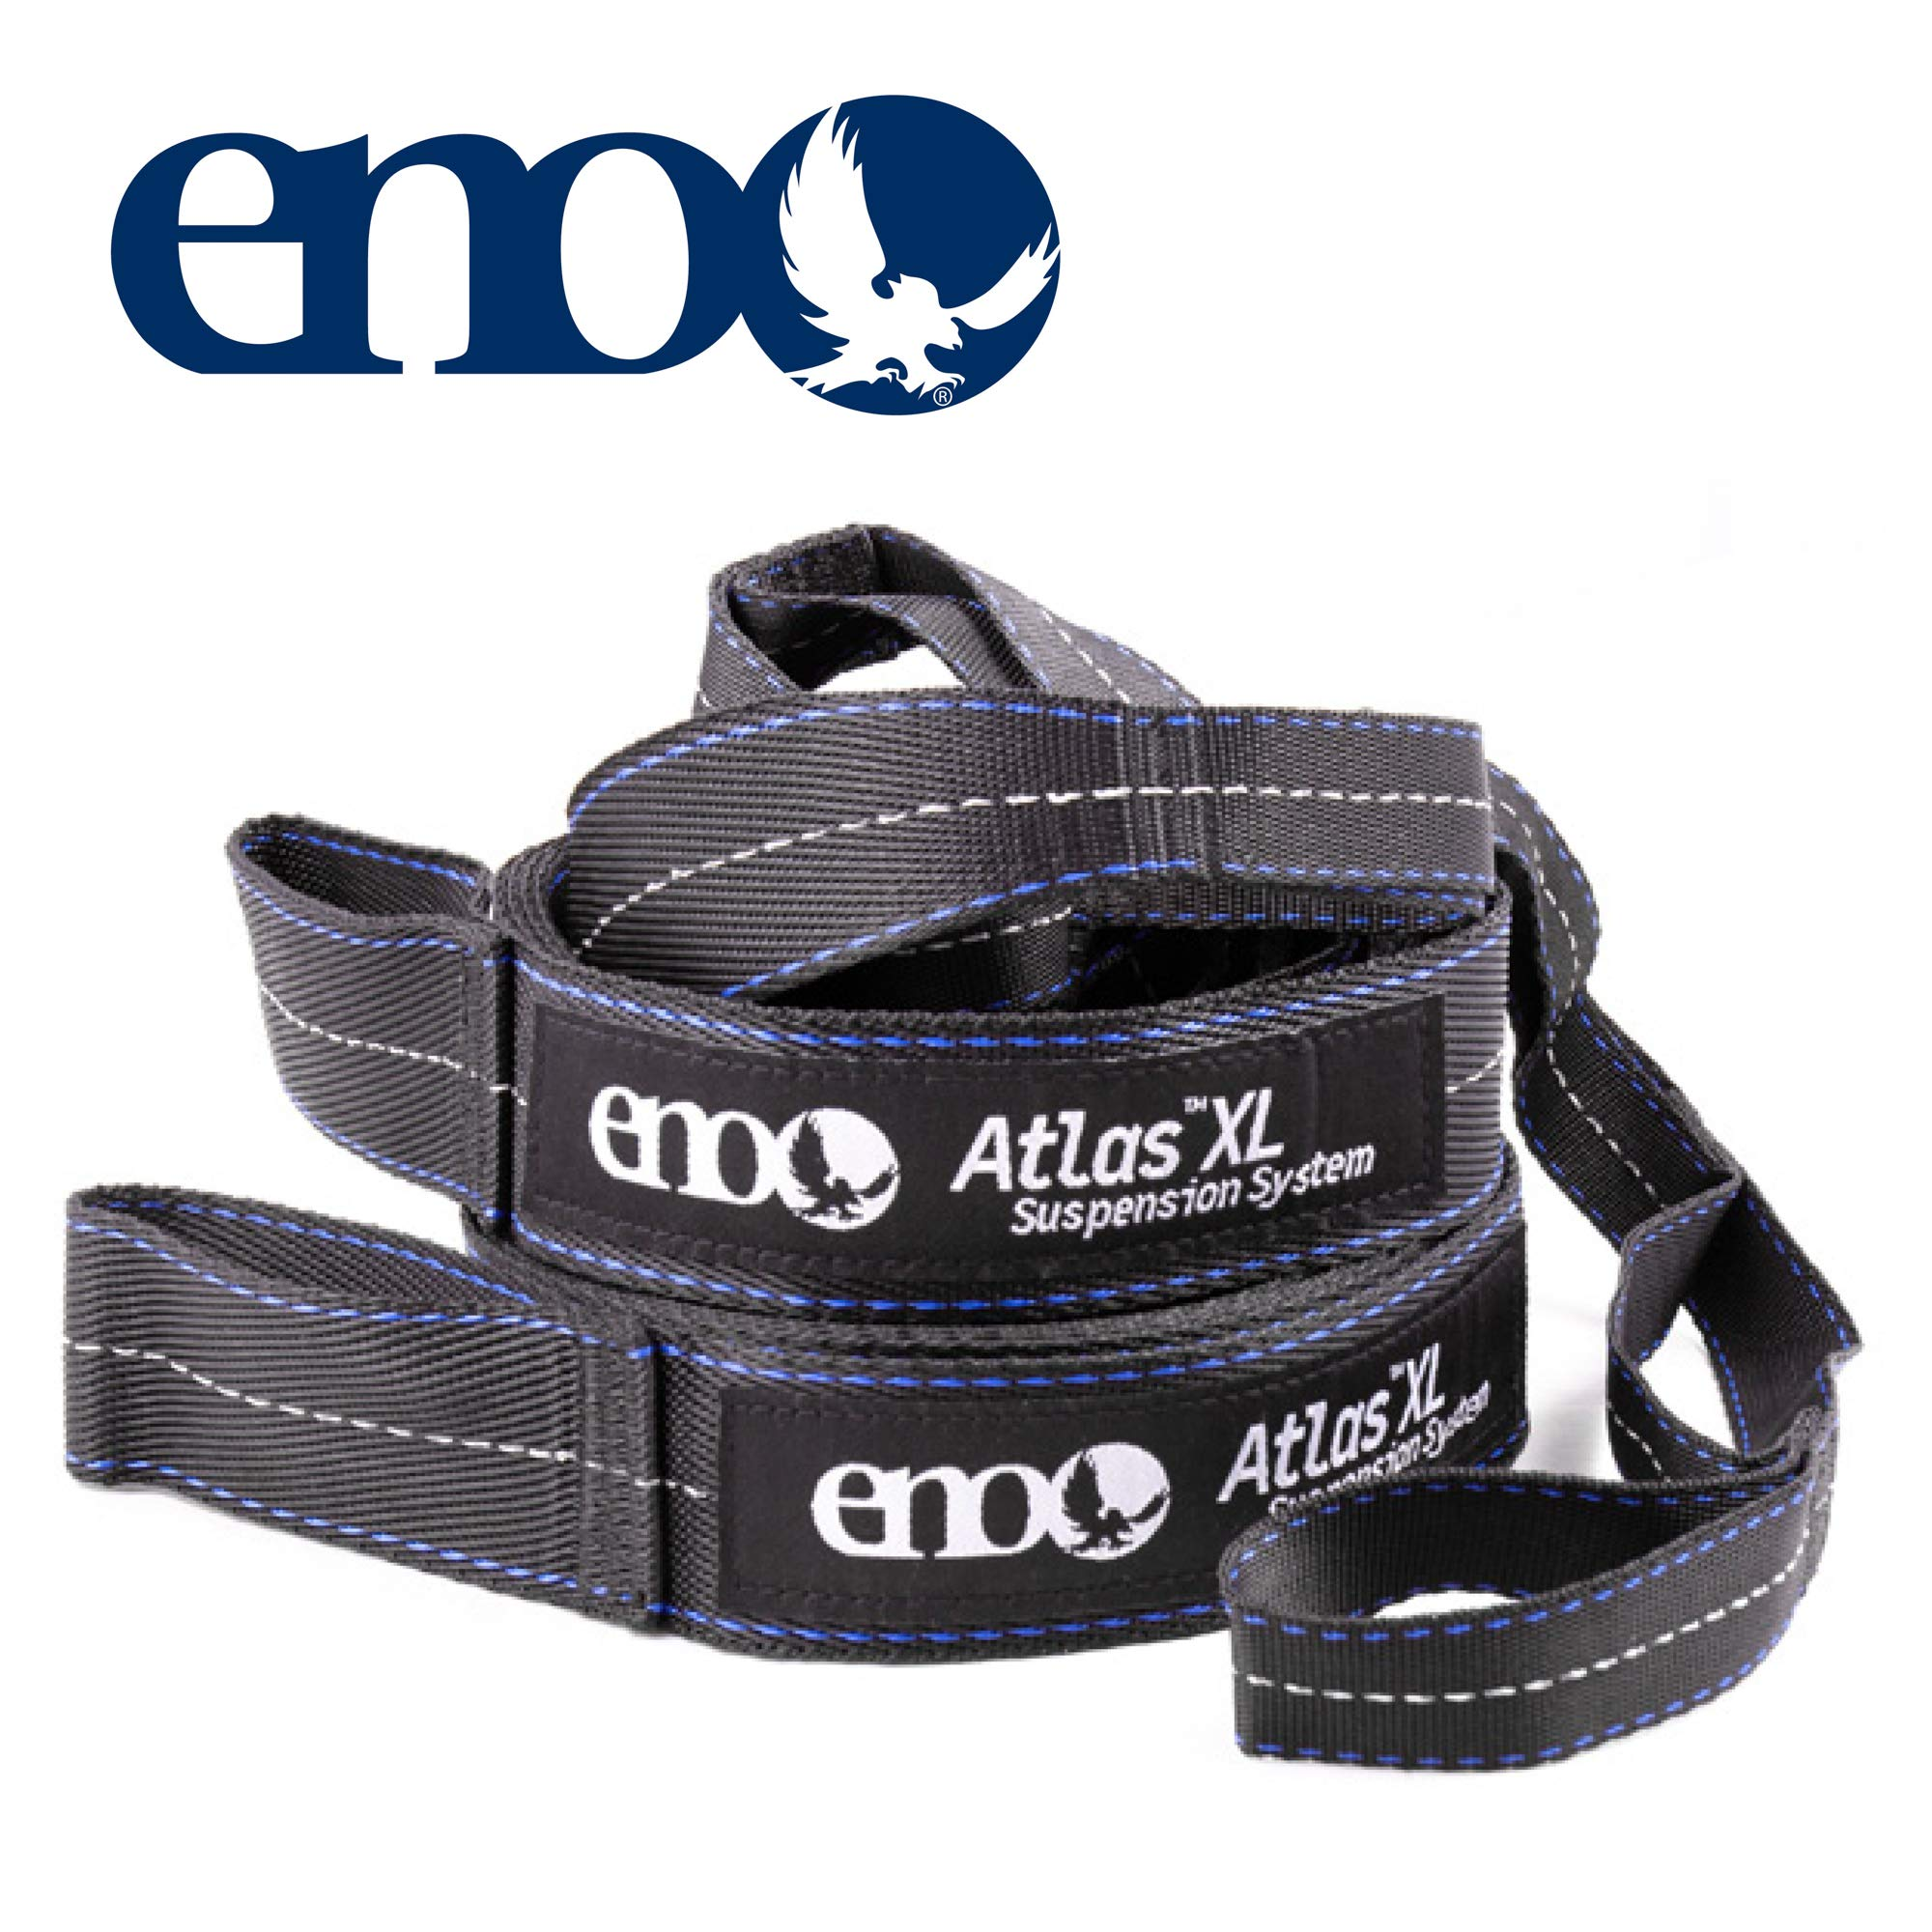 ENO - Eagles Nest Outfitters Atlas XL Hammock Straps, Suspension System, 400 LB Capacity, 13'6'' x 1.5/.75''